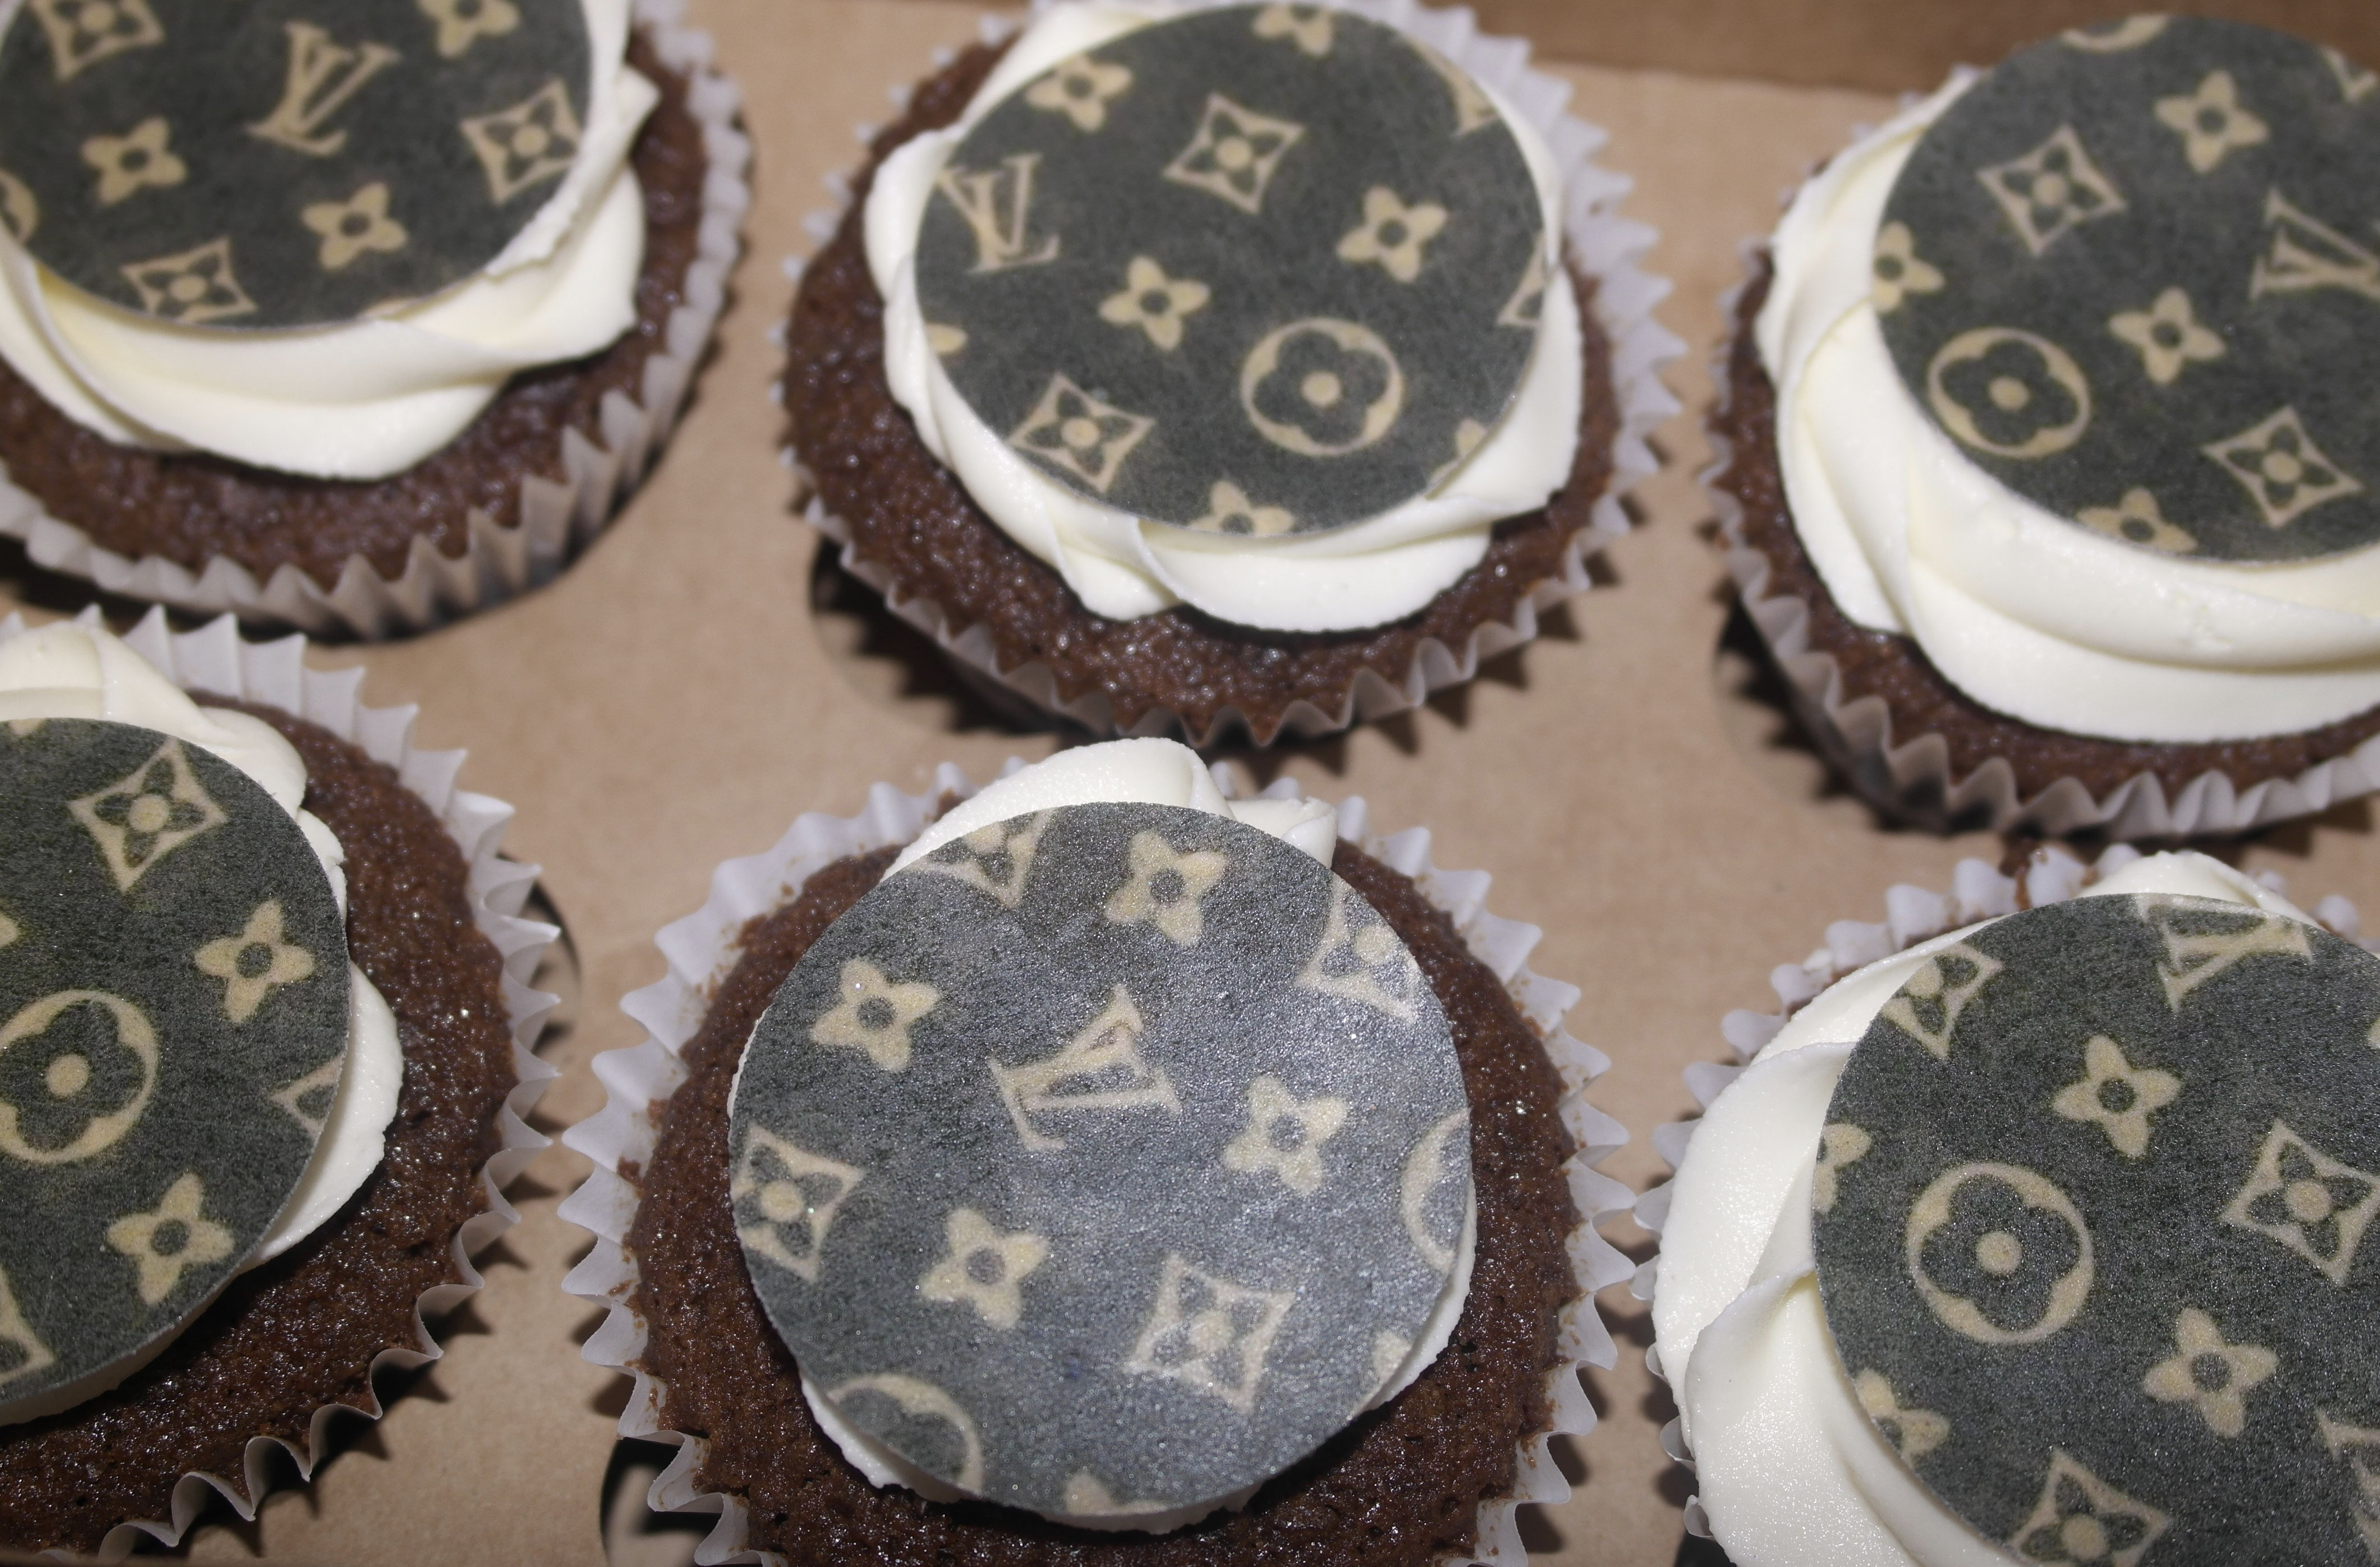 Louie Vuitton Cupcakes Rum Cupcakes with a Louie Vuitton print topper